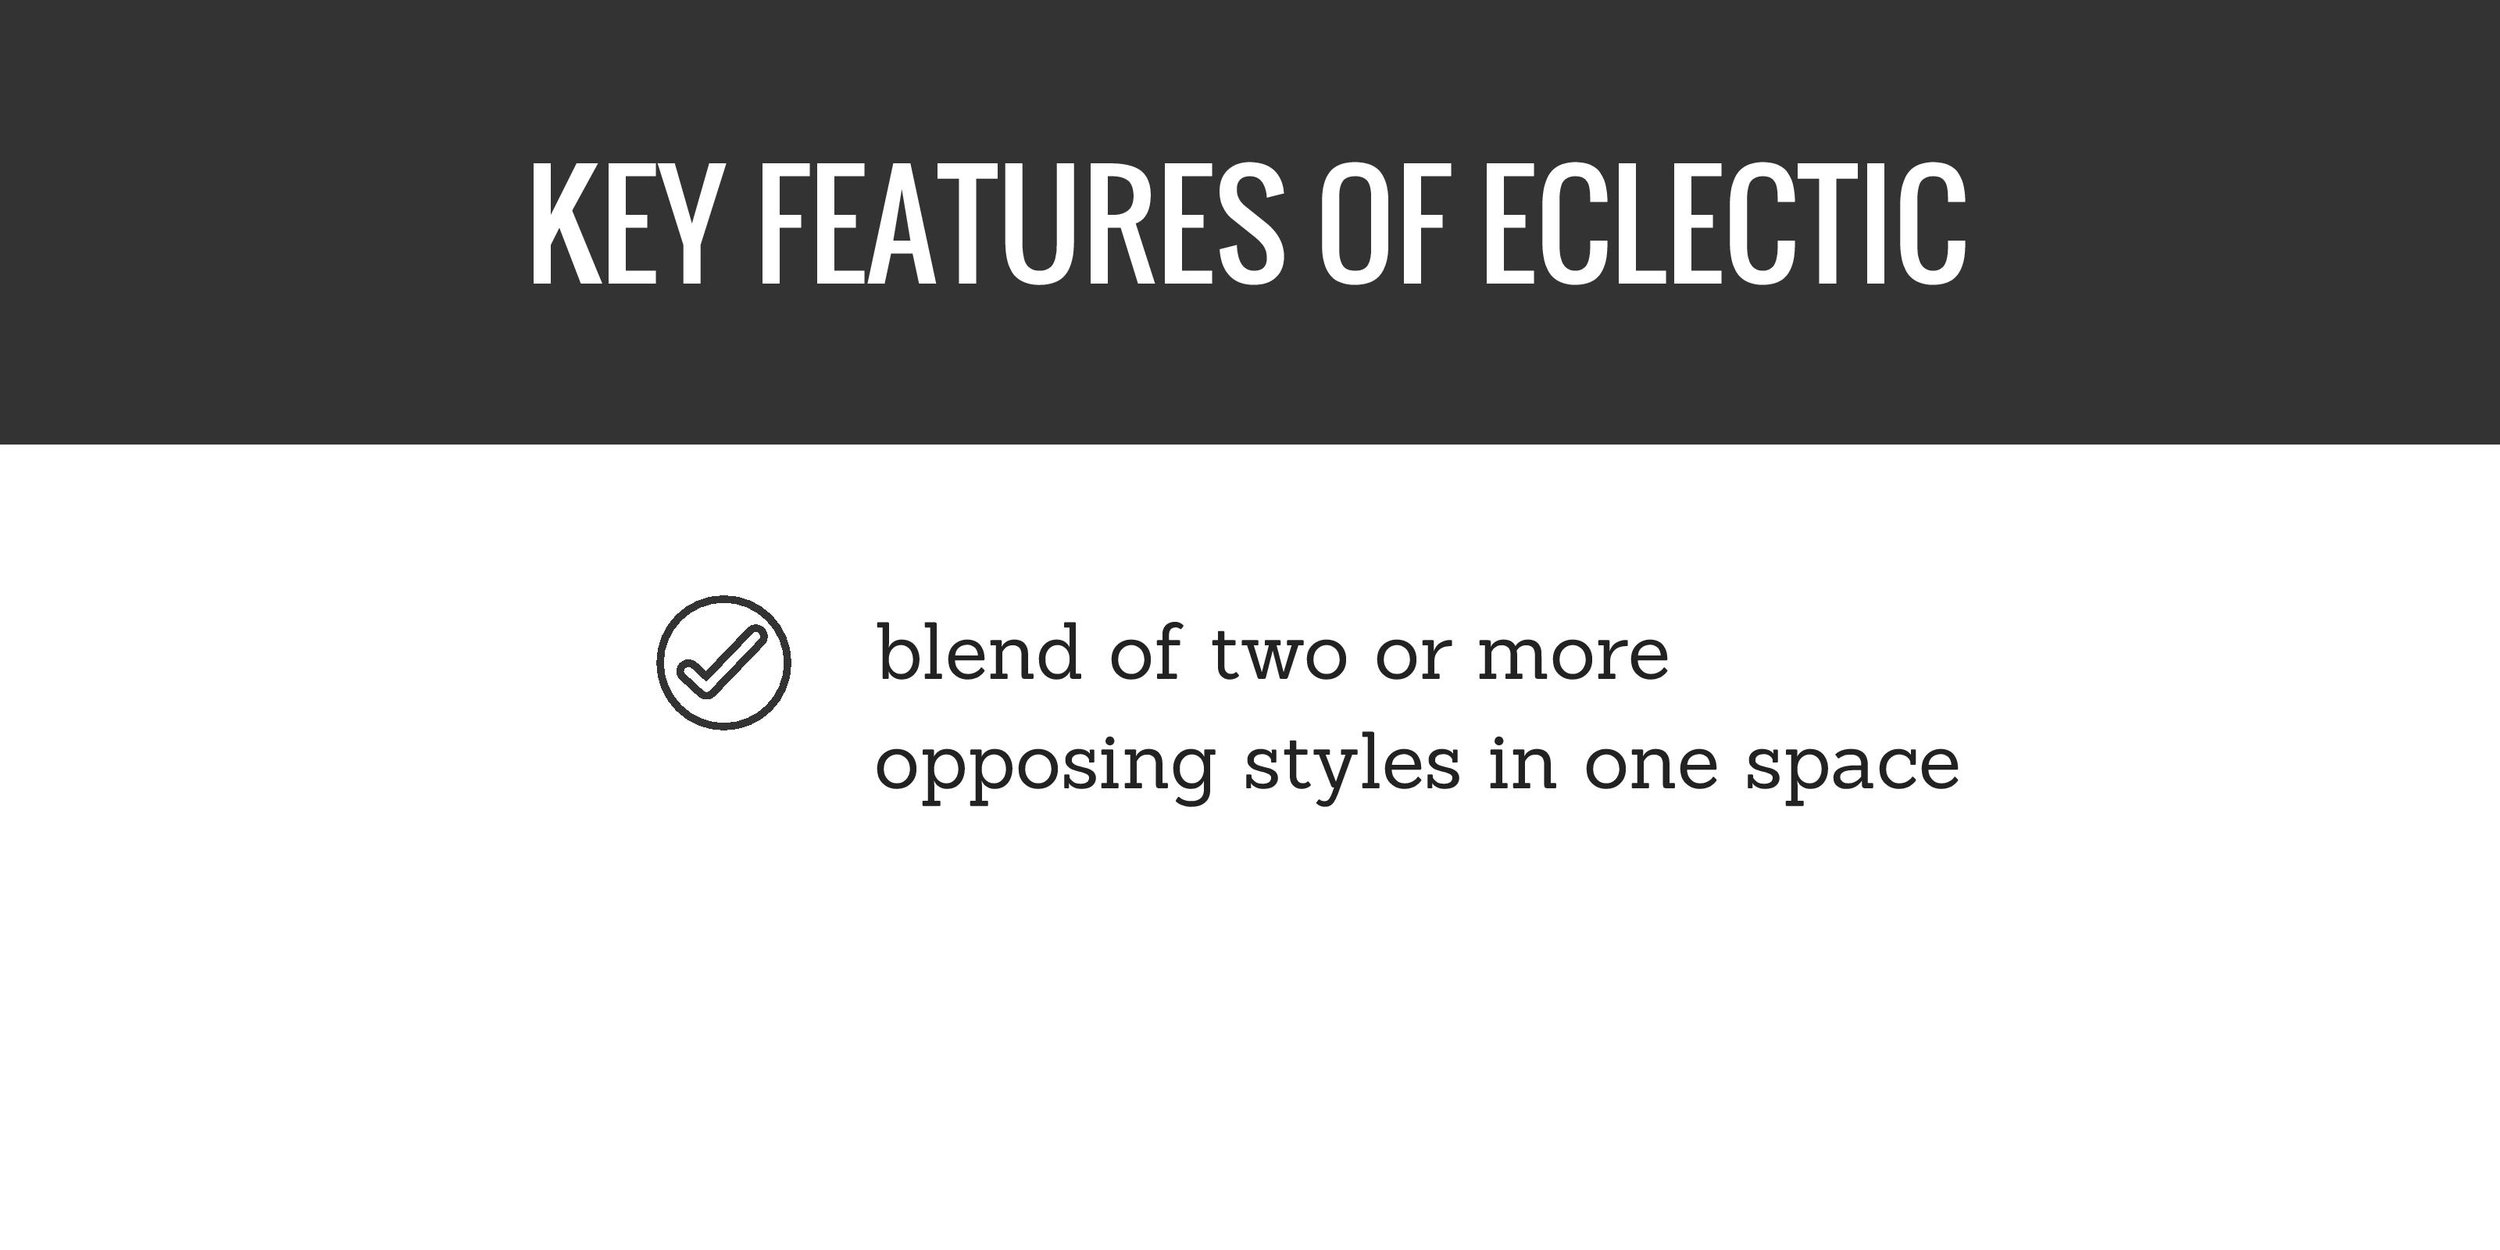 key features of eclectic